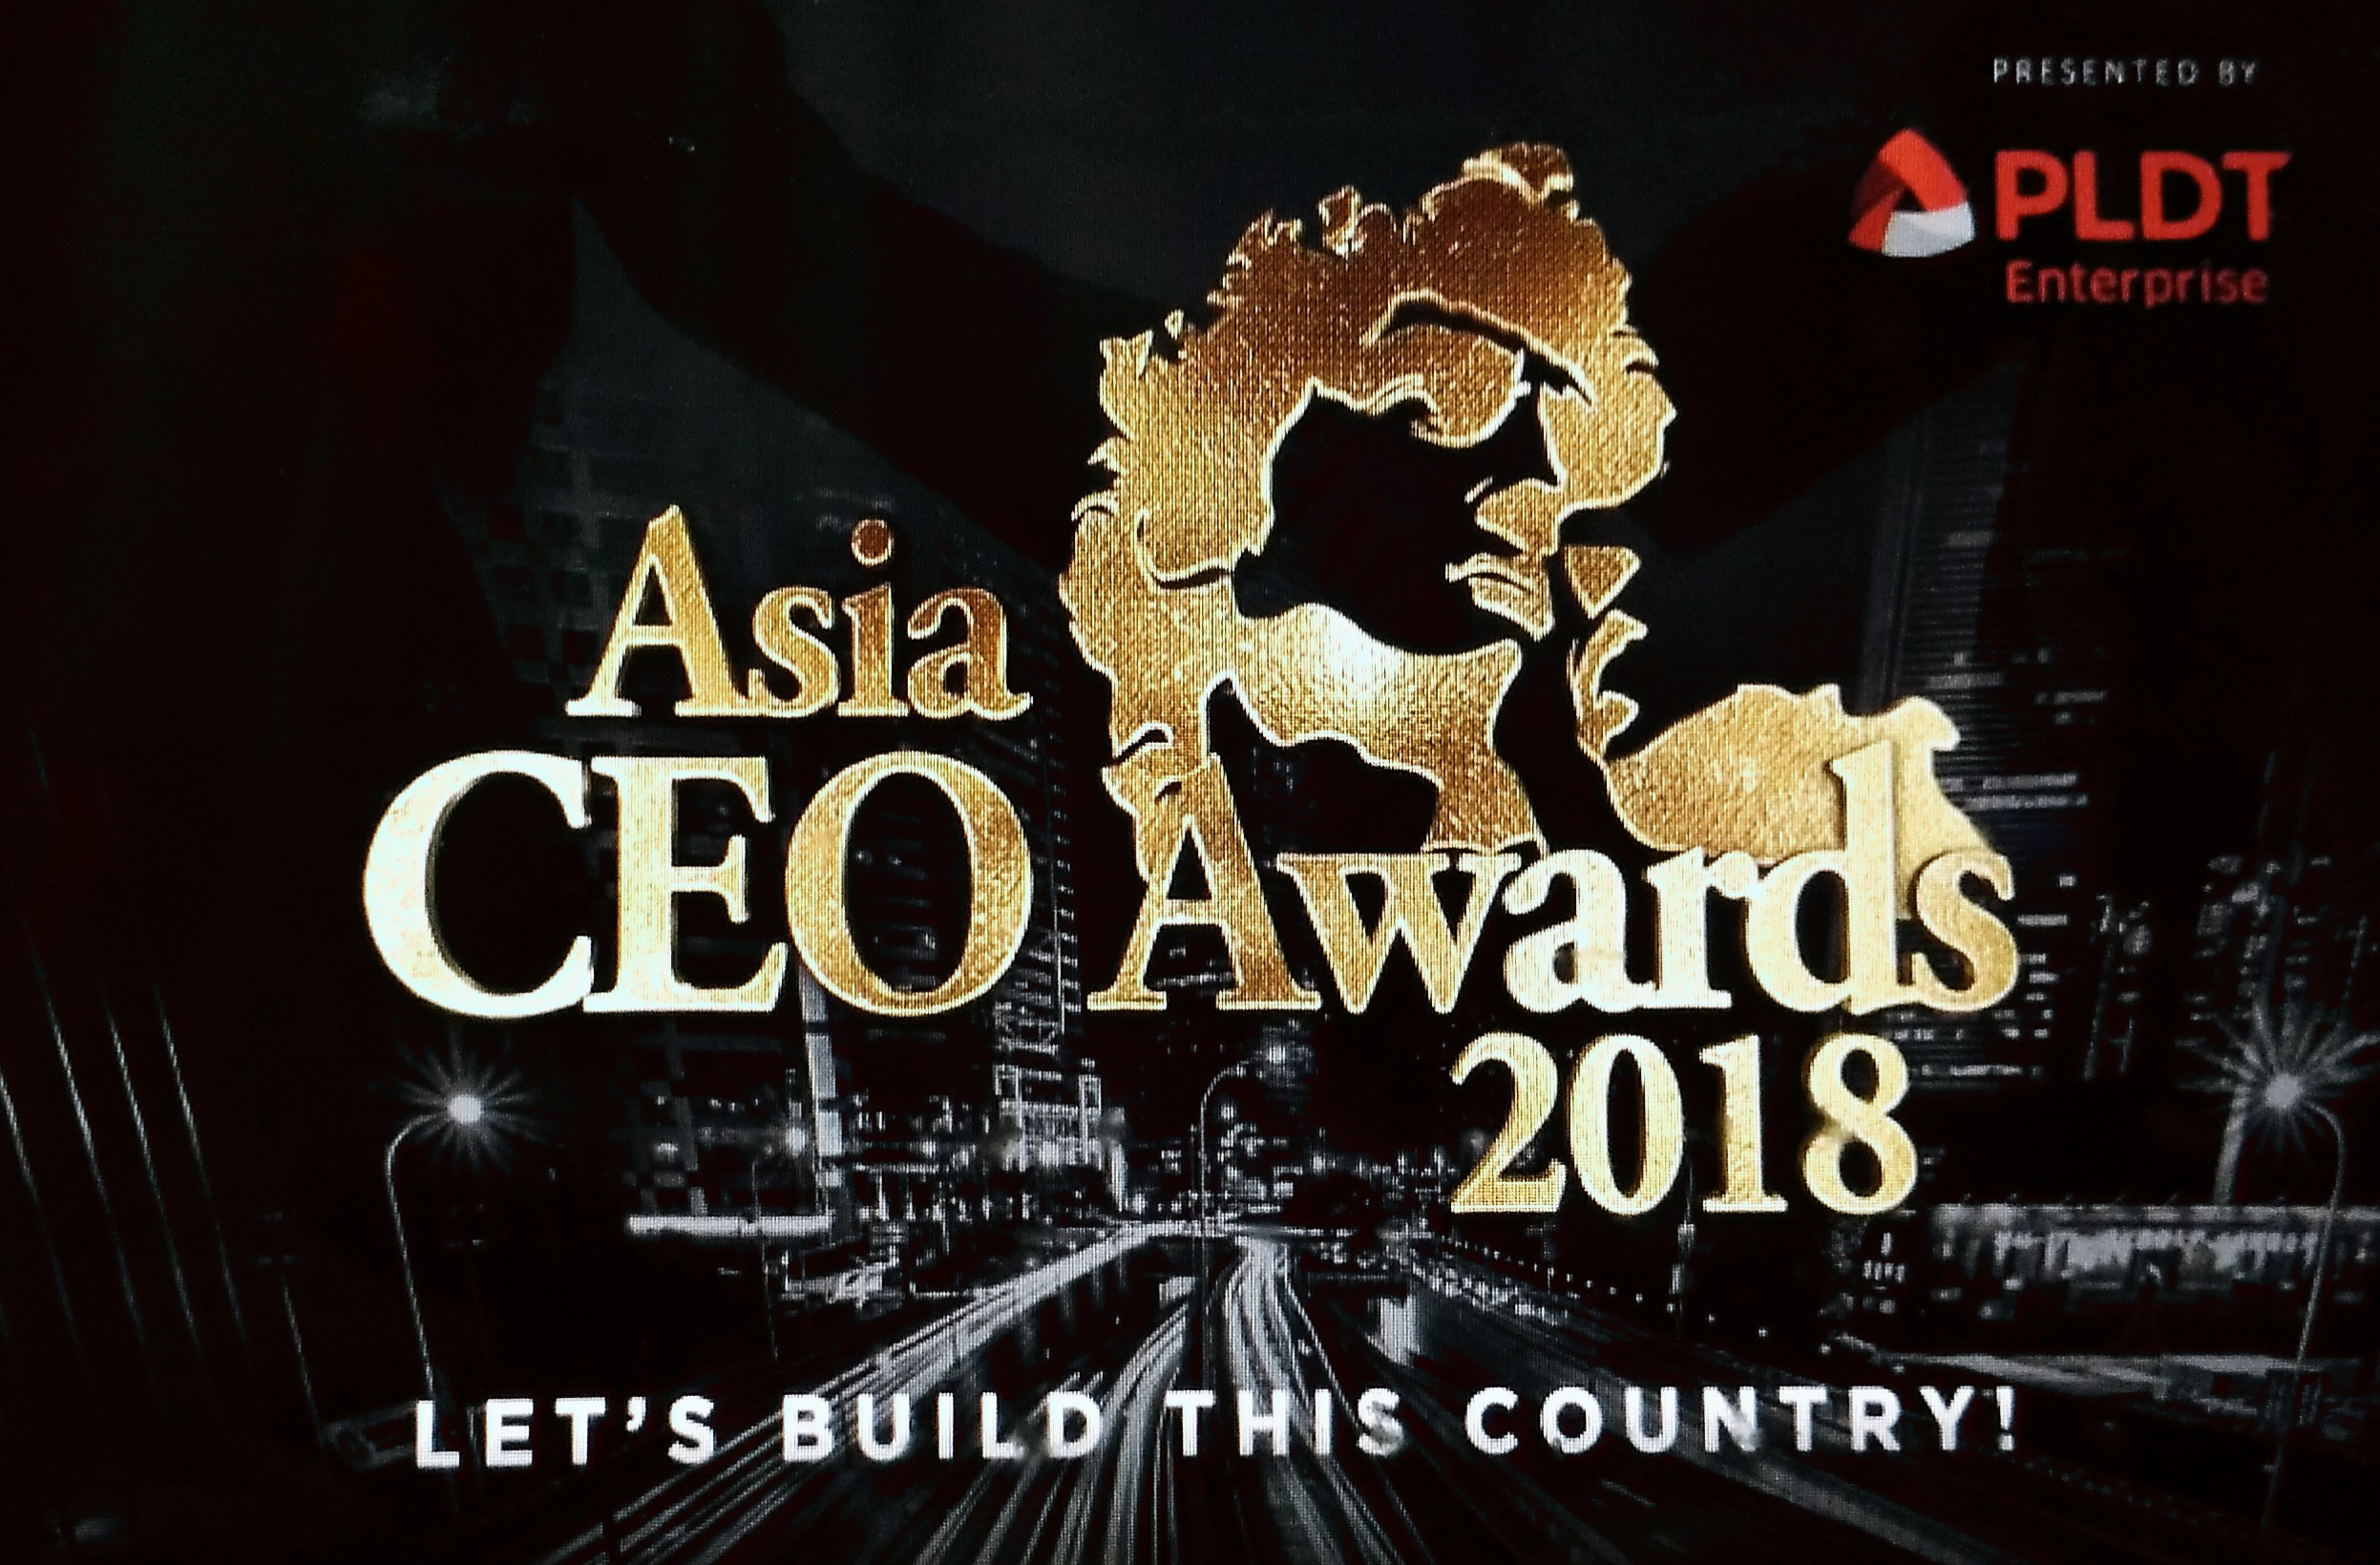 Microsoft PH's COO is 'Young Leader of the Year' in Asia CEO Awards 2018